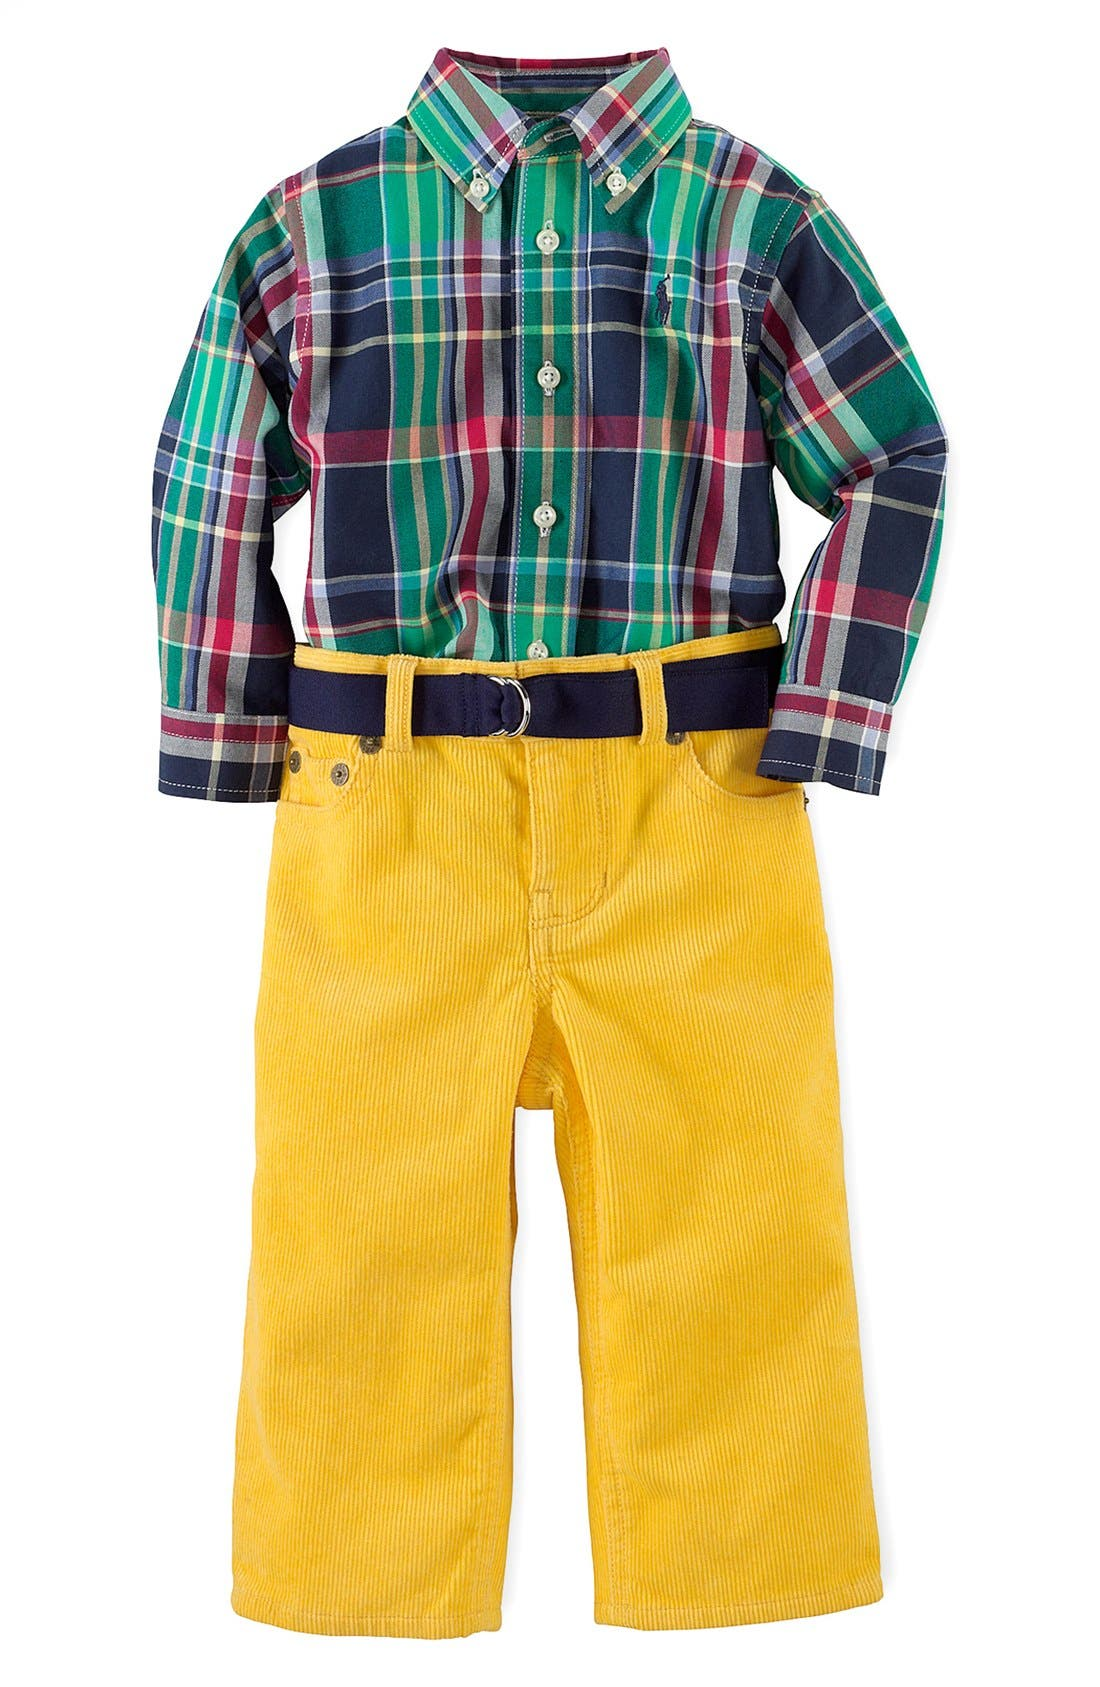 Main Image - Ralph Lauren Shirt & Pants (Baby Boys)